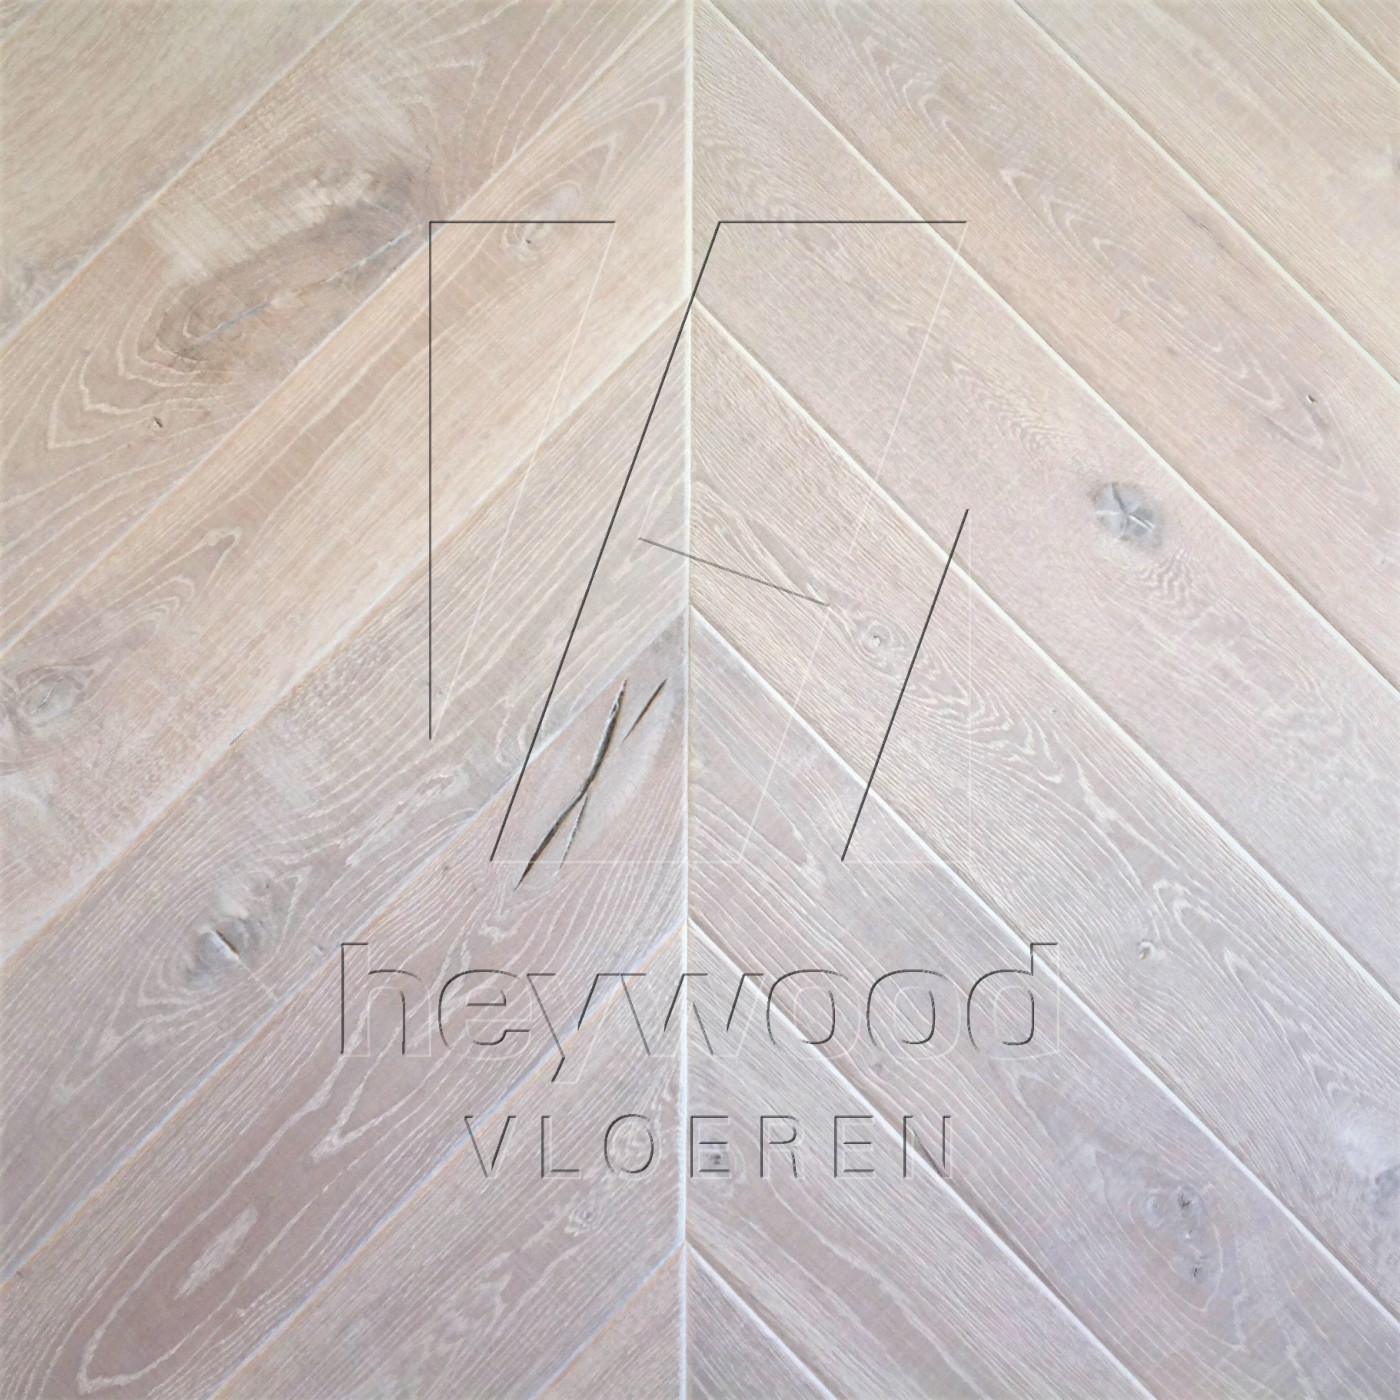 Knotting Hill Chevron 'Svalbard' in Chevron of Pattern & Panel Floors